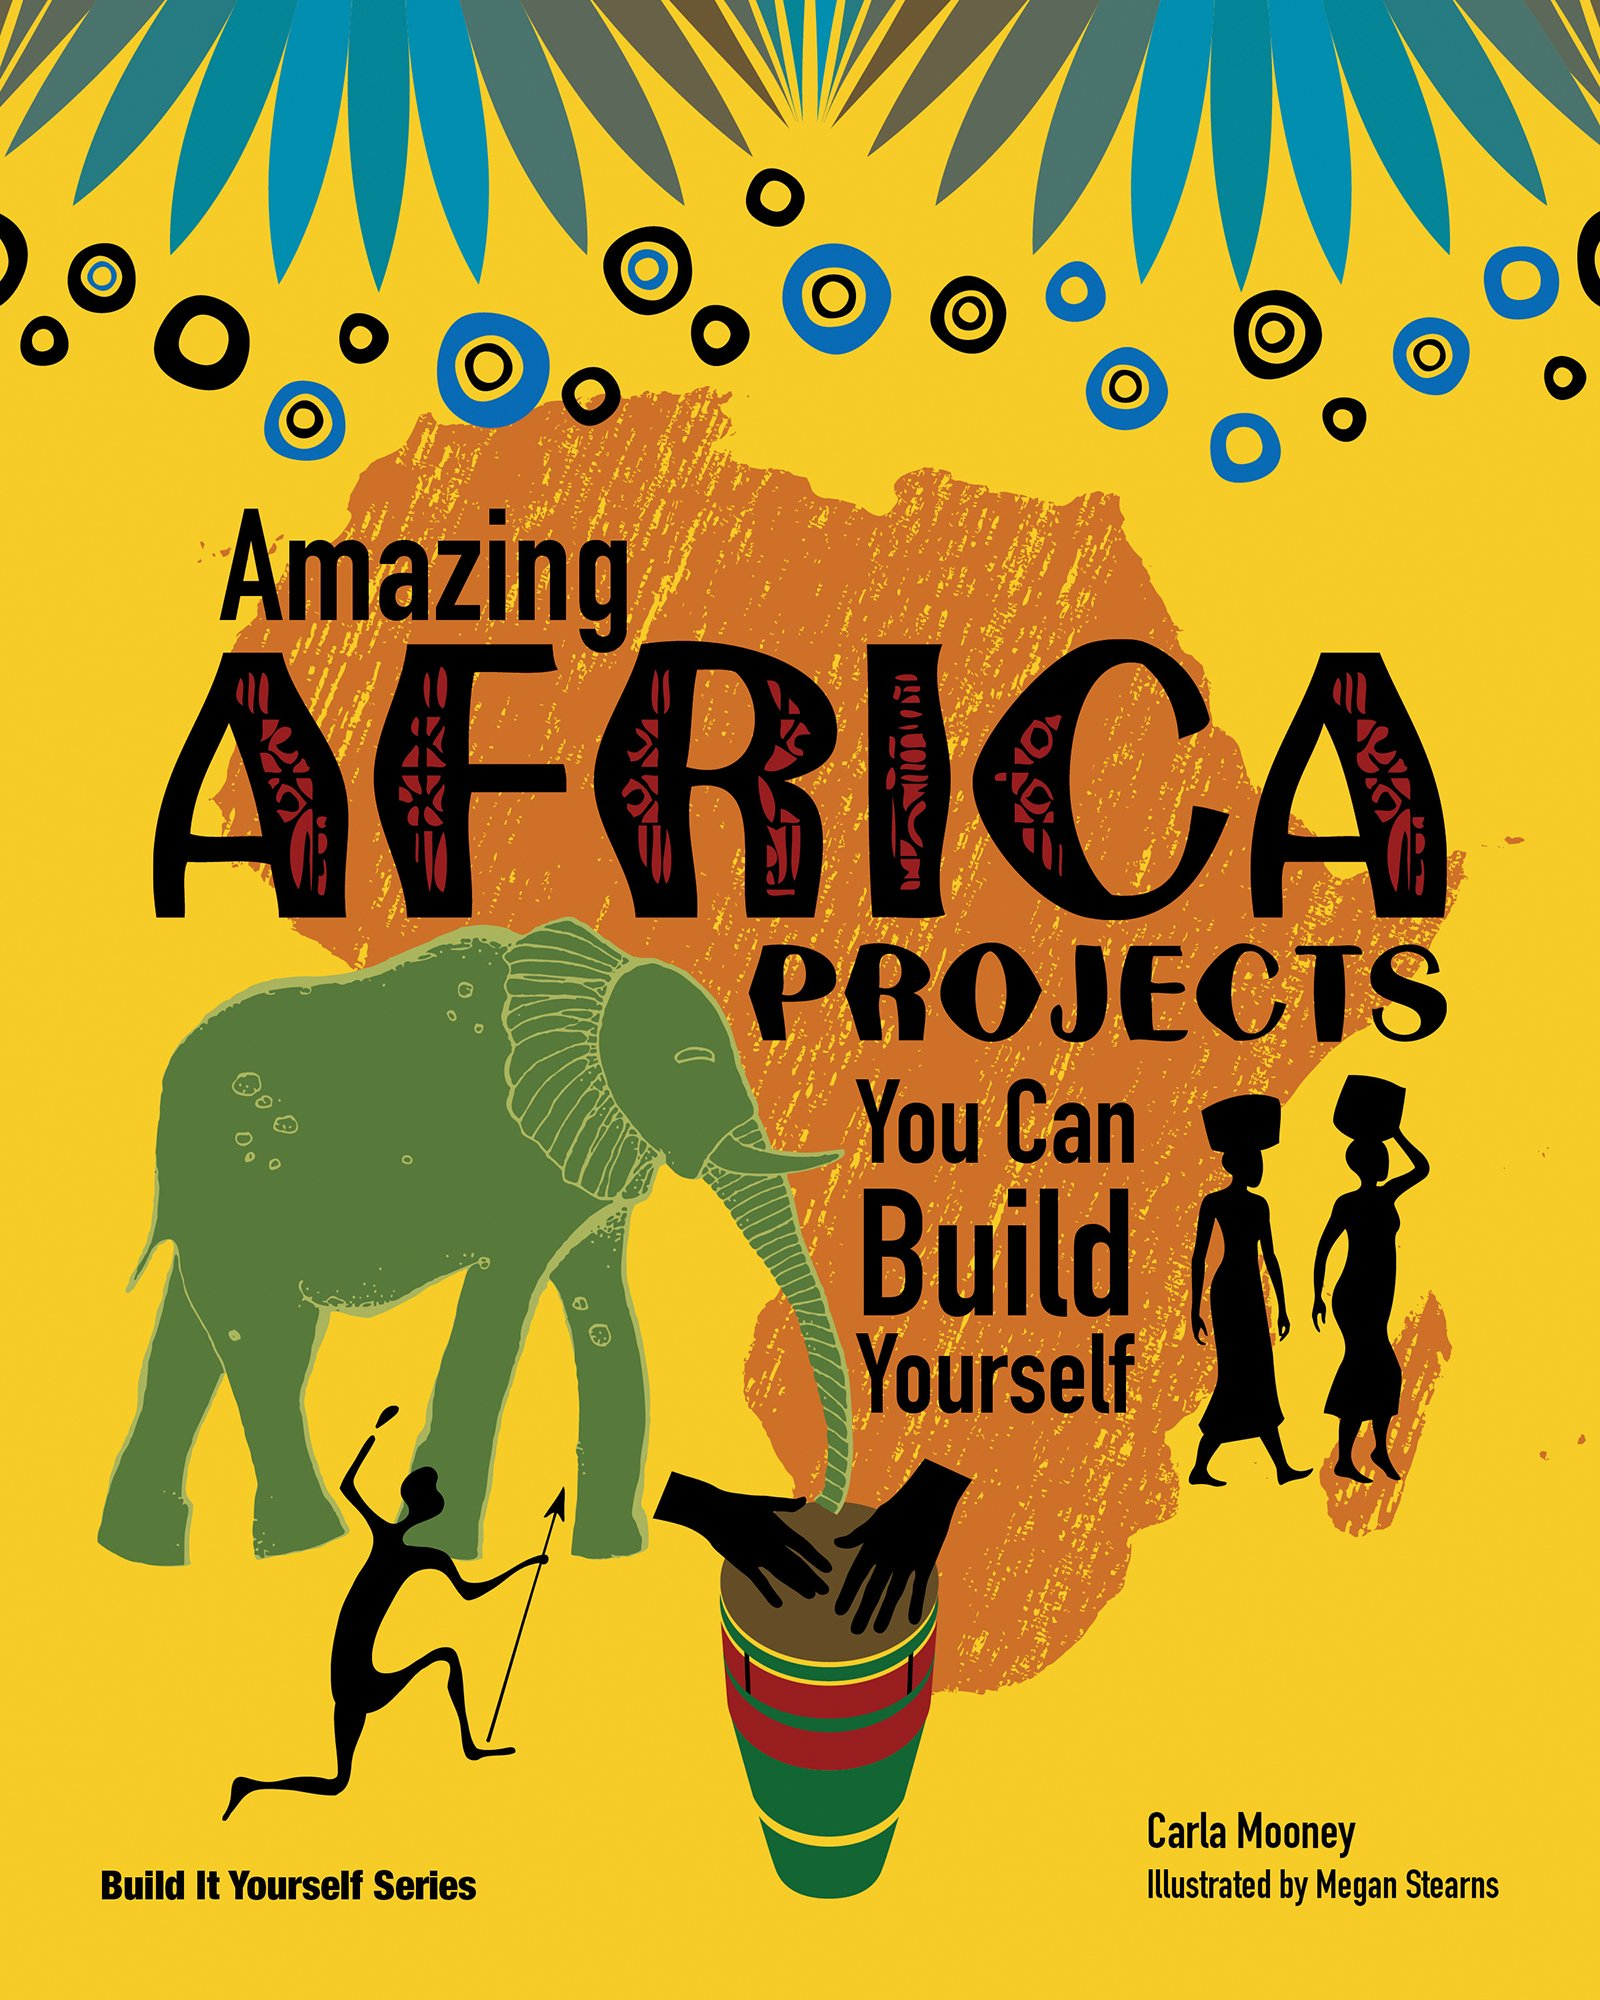 Amazing Africa Projects You Can Build Yourself (Build It Yourself series)